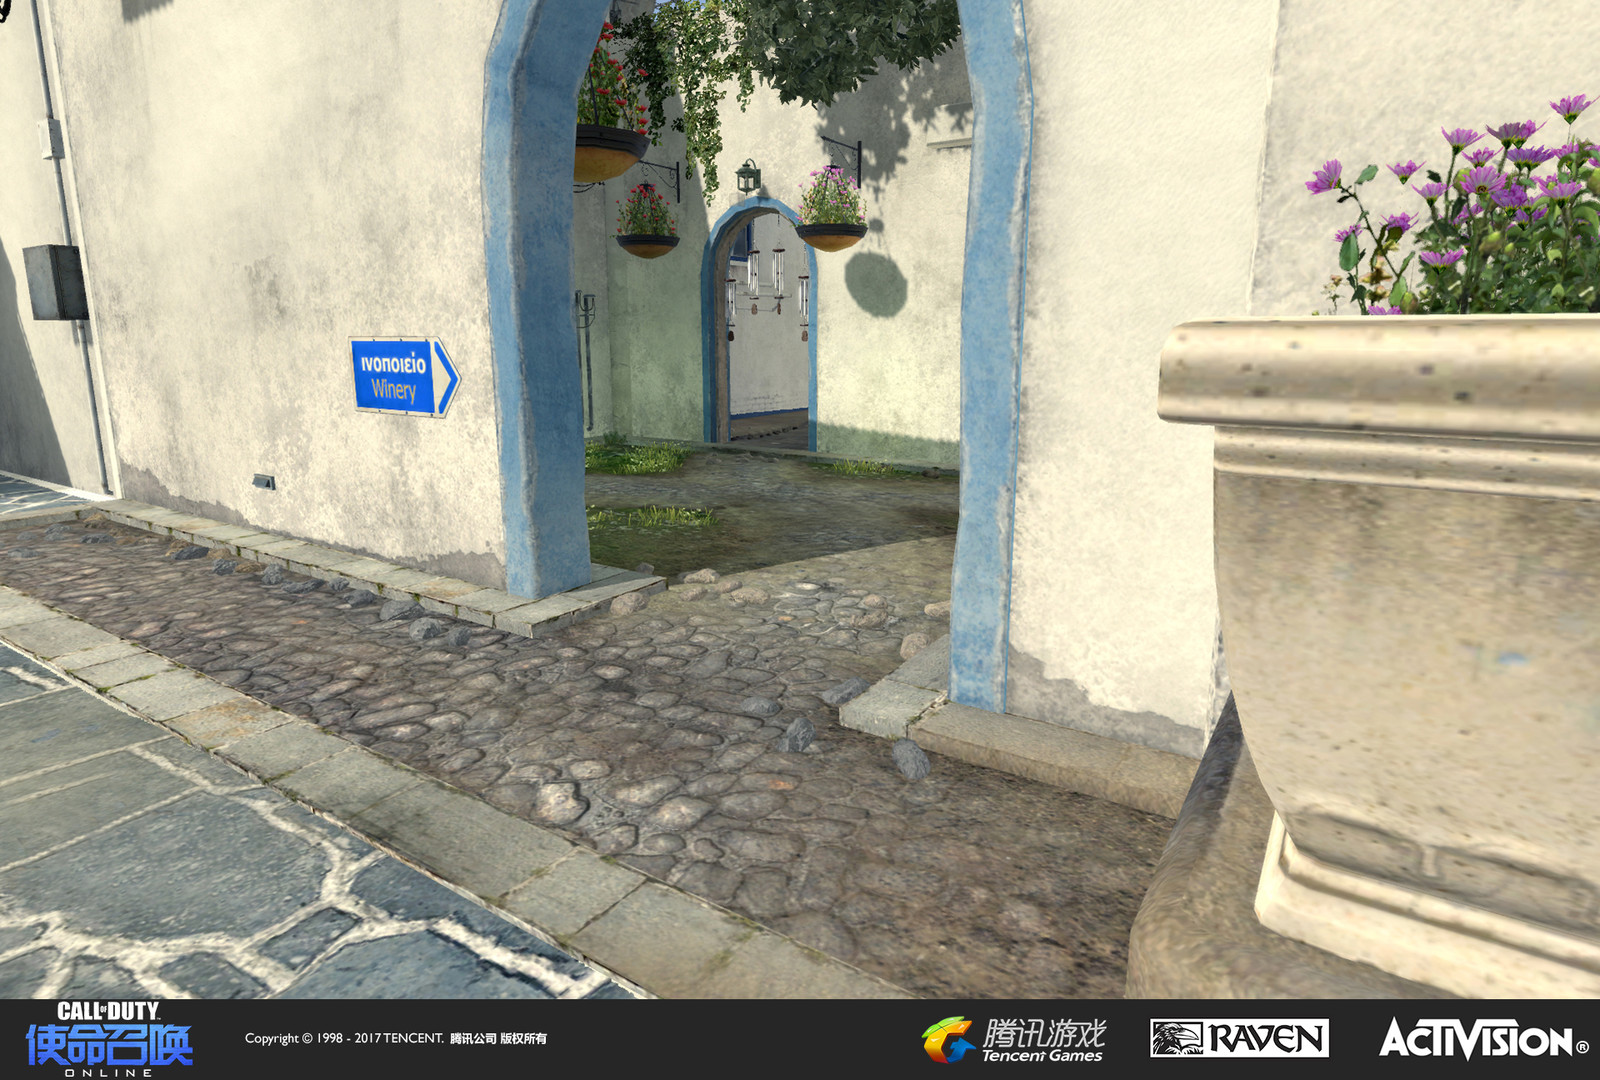 Terrain and some set dress of the small garden courtyard wedged into the Tunisia map. Creating unique landmarks to differentiate space helps to orient players. Other set dress by Gabriel Cervantes.